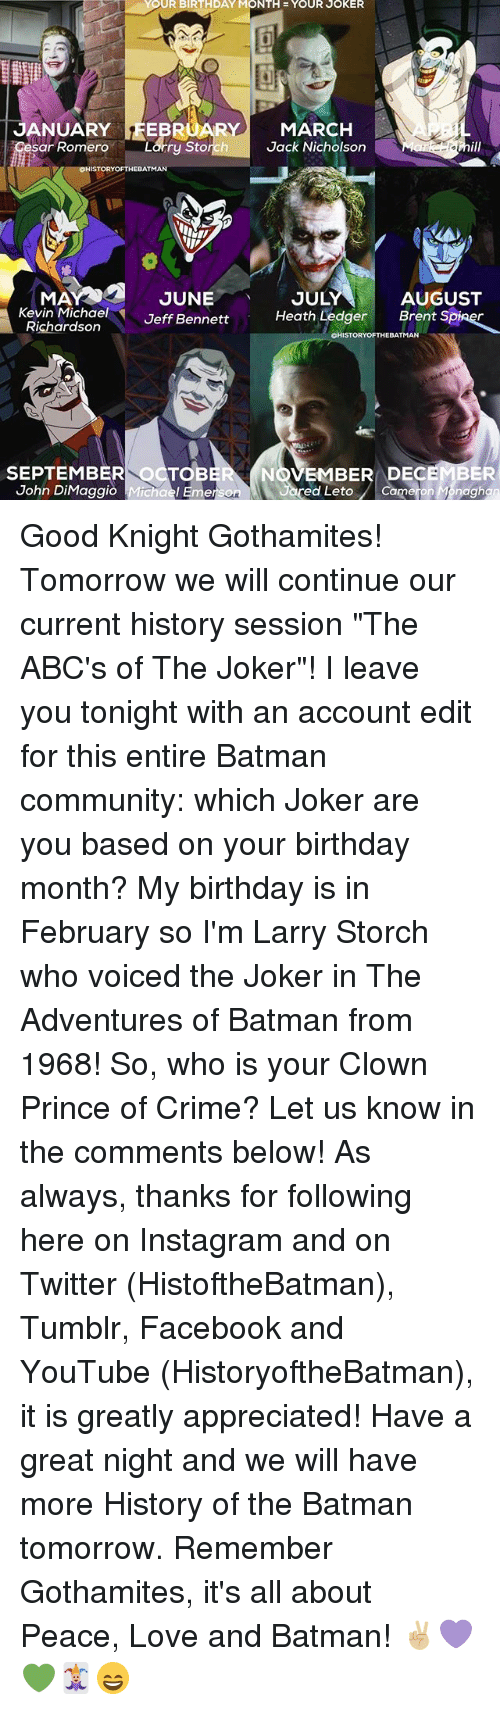 """sars: YOUR BIRTHDAY MONTH YOUR  JOKER  JANUARY  19REB  RY MARCH  Jack Nicholson  sar Romero  Larry Storch  ISTORYOFTHEBATMAN  JULY  MAN  JUNE  AUGUST  Kevin Michael  Jeff Bennett  Heath Ledger  Brent S  Richardson  OHISTORYOFTHEBATMAN  SEPTEMBER To  NOVEMBER DECE  John DiMaggio Mich  Cameron M naghan  ed Leto Good Knight Gothamites! Tomorrow we will continue our current history session """"The ABC's of The Joker""""! I leave you tonight with an account edit for this entire Batman community: which Joker are you based on your birthday month? My birthday is in February so I'm Larry Storch who voiced the Joker in The Adventures of Batman from 1968! So, who is your Clown Prince of Crime? Let us know in the comments below! As always, thanks for following here on Instagram and on Twitter (HistoftheBatman), Tumblr, Facebook and YouTube (HistoryoftheBatman), it is greatly appreciated! Have a great night and we will have more History of the Batman tomorrow. Remember Gothamites, it's all about Peace, Love and Batman! ✌🏼💜💚🃏😄"""